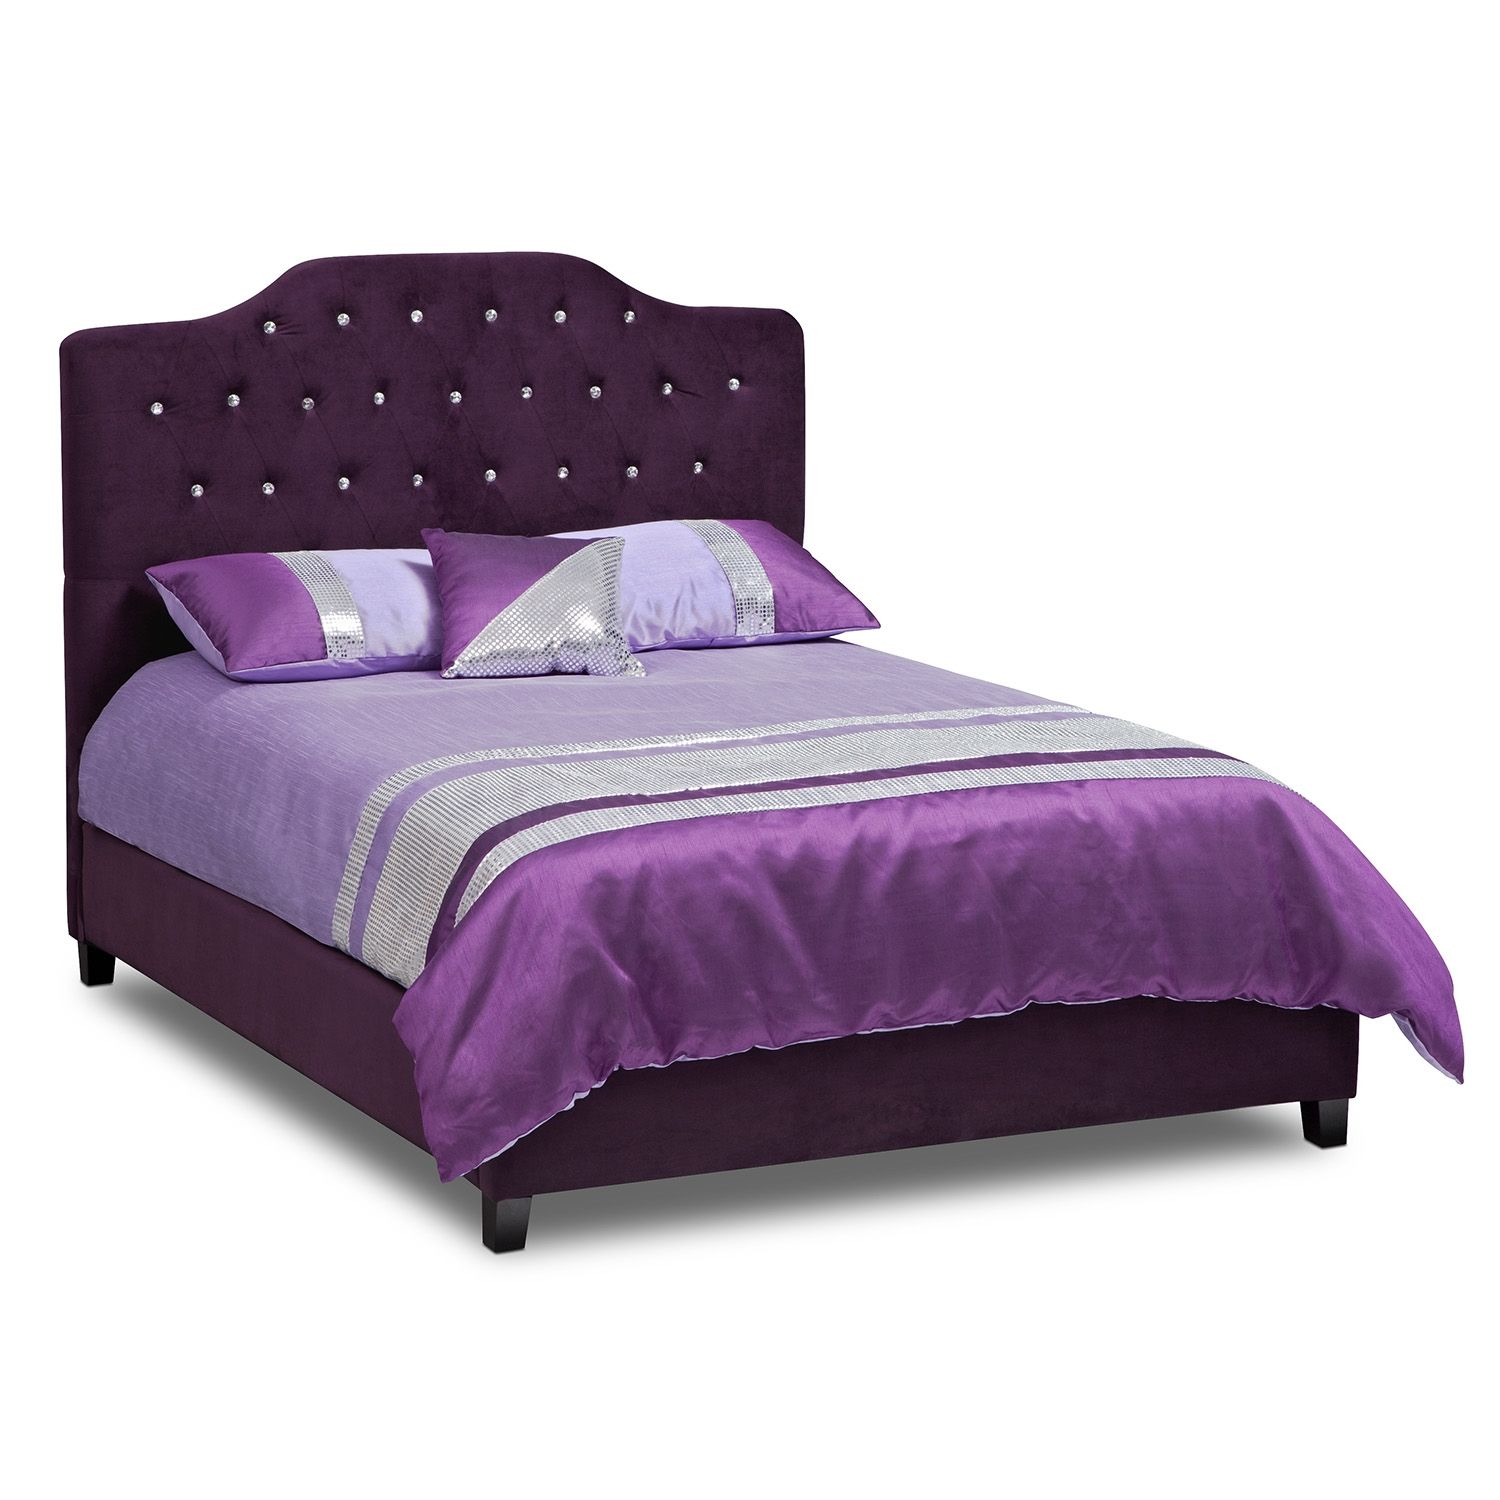 Bedroom furniture valerie ii queen bed glam time for Bedroom furniture beds